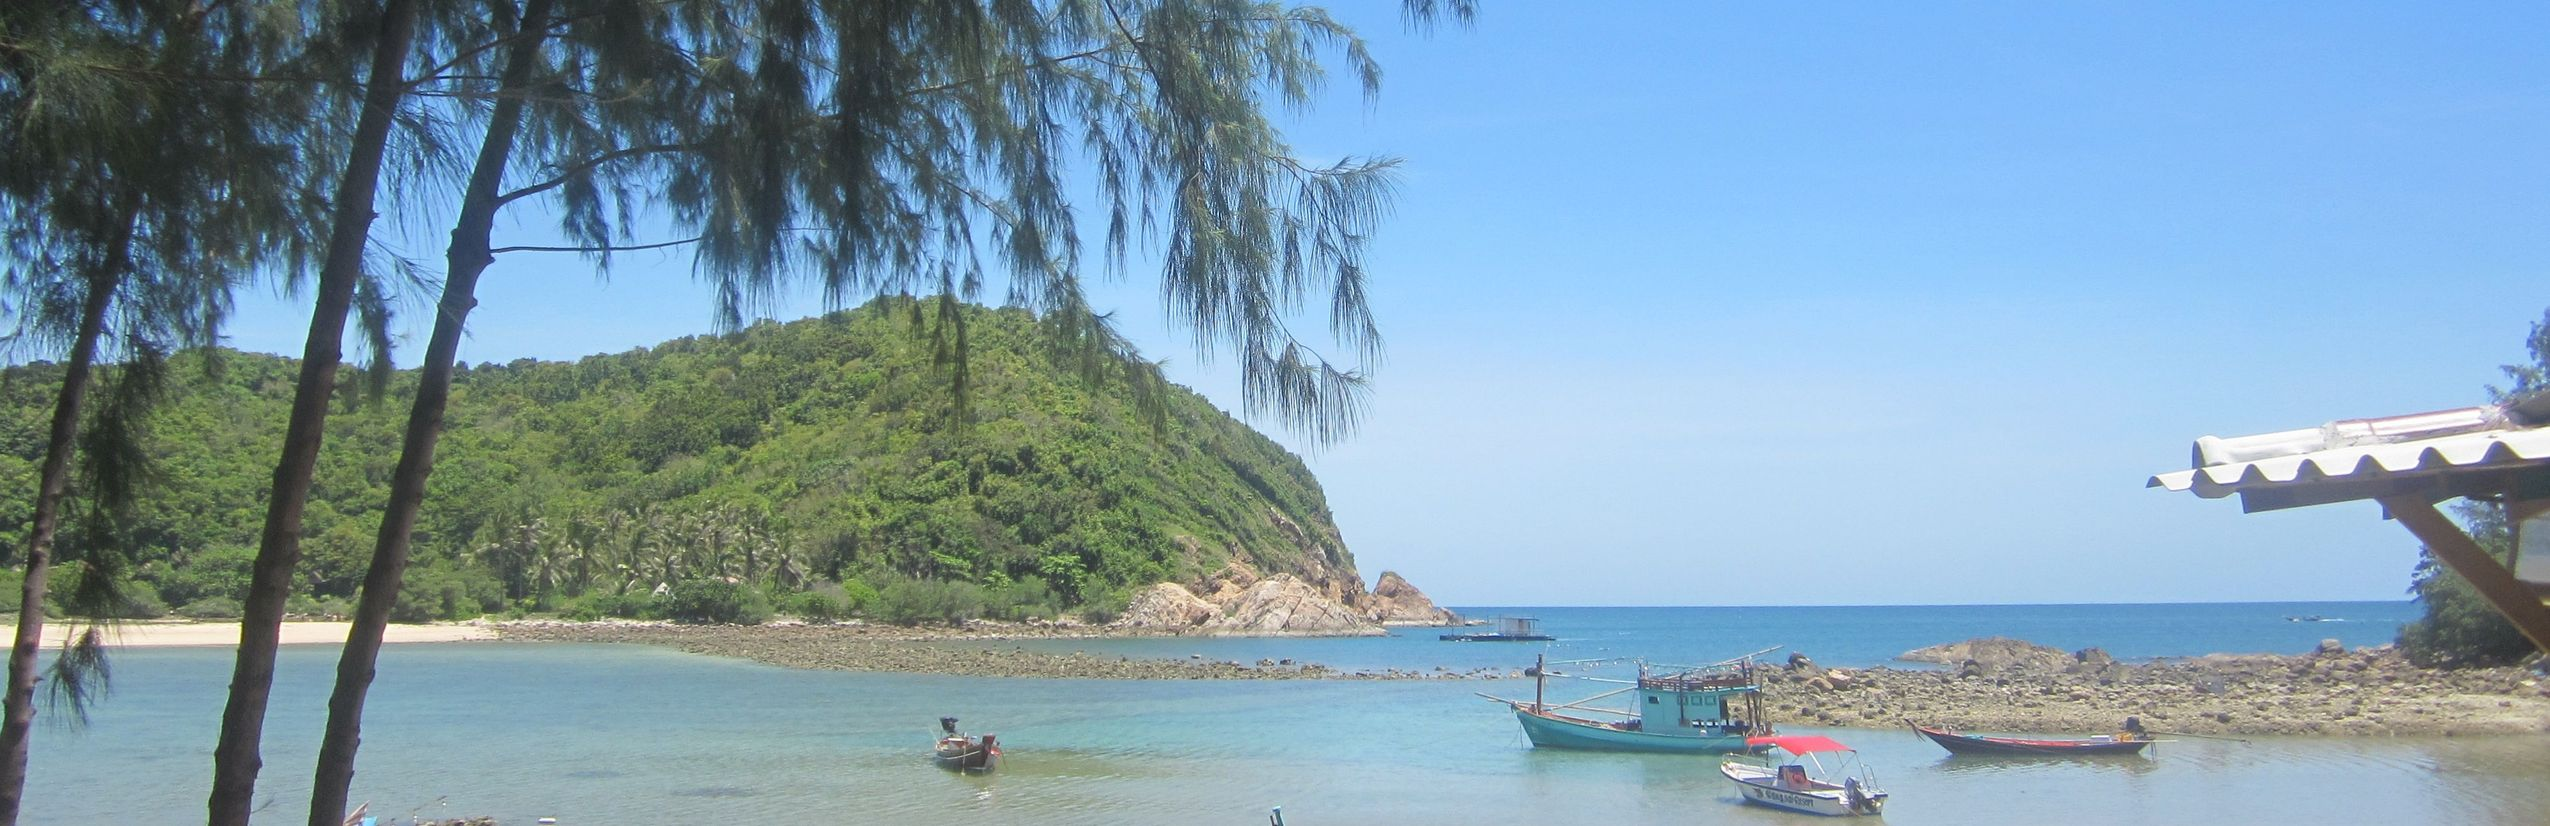 Thailand Familienreise - Thailand for family - Header Reiseinformationen